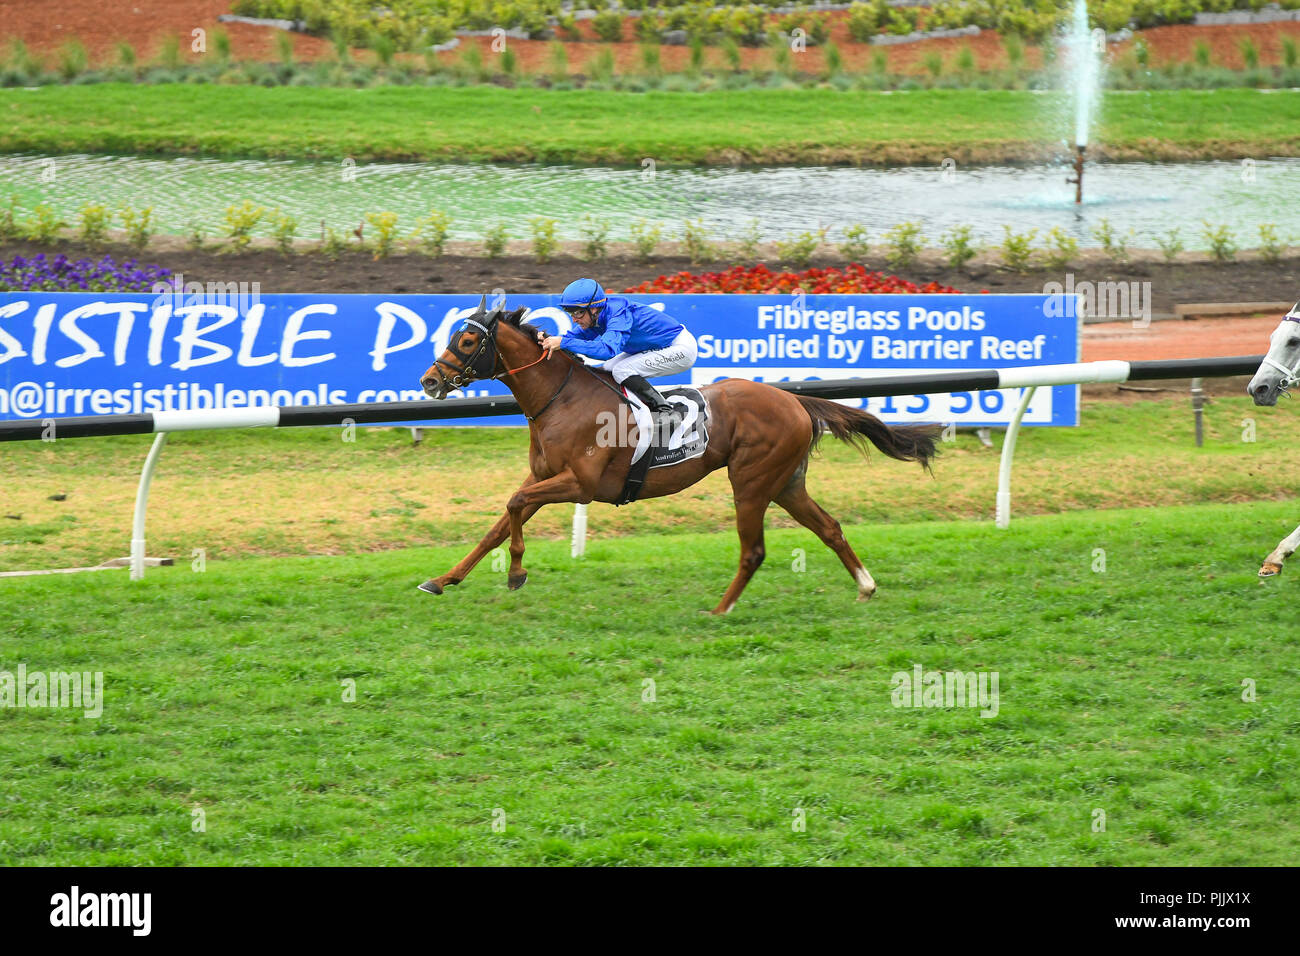 Sydney, Australia  08 Sep 2018  Jockey Glyn Schofield rides Home Of